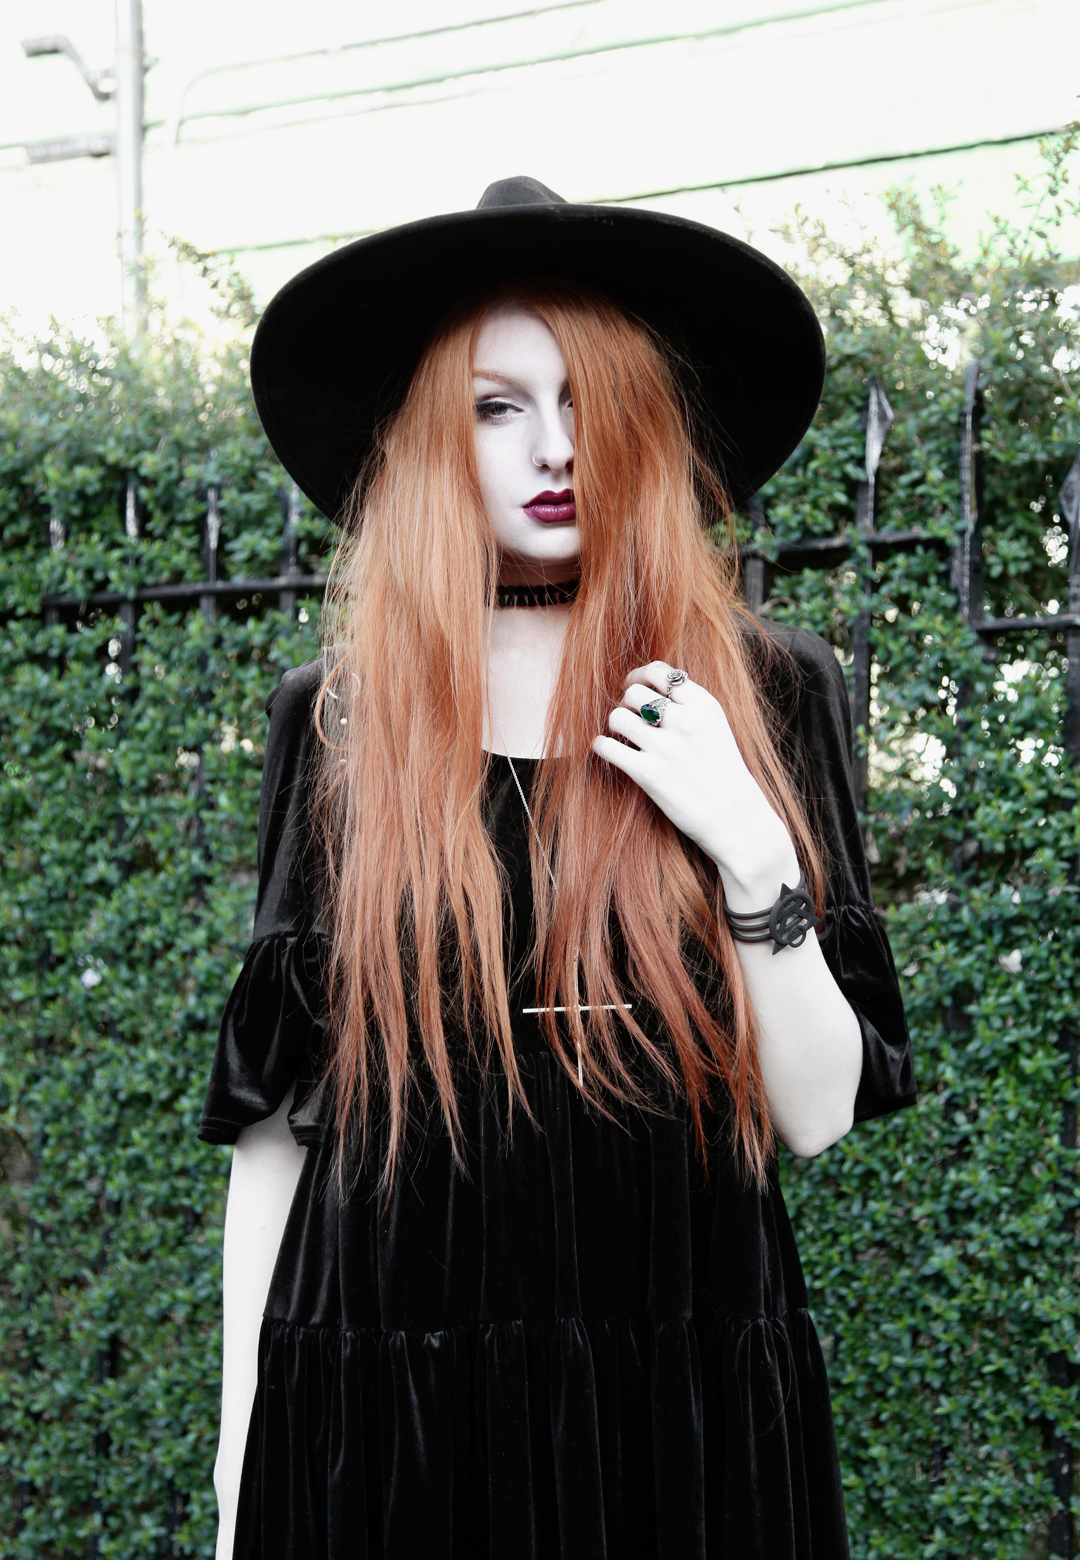 Olivia Emily wears Asos Reclaimed Vintage tiered black velvet dress, Killstar Witch Brim hat, and Kiki Minchin Classic Cross silver necklace